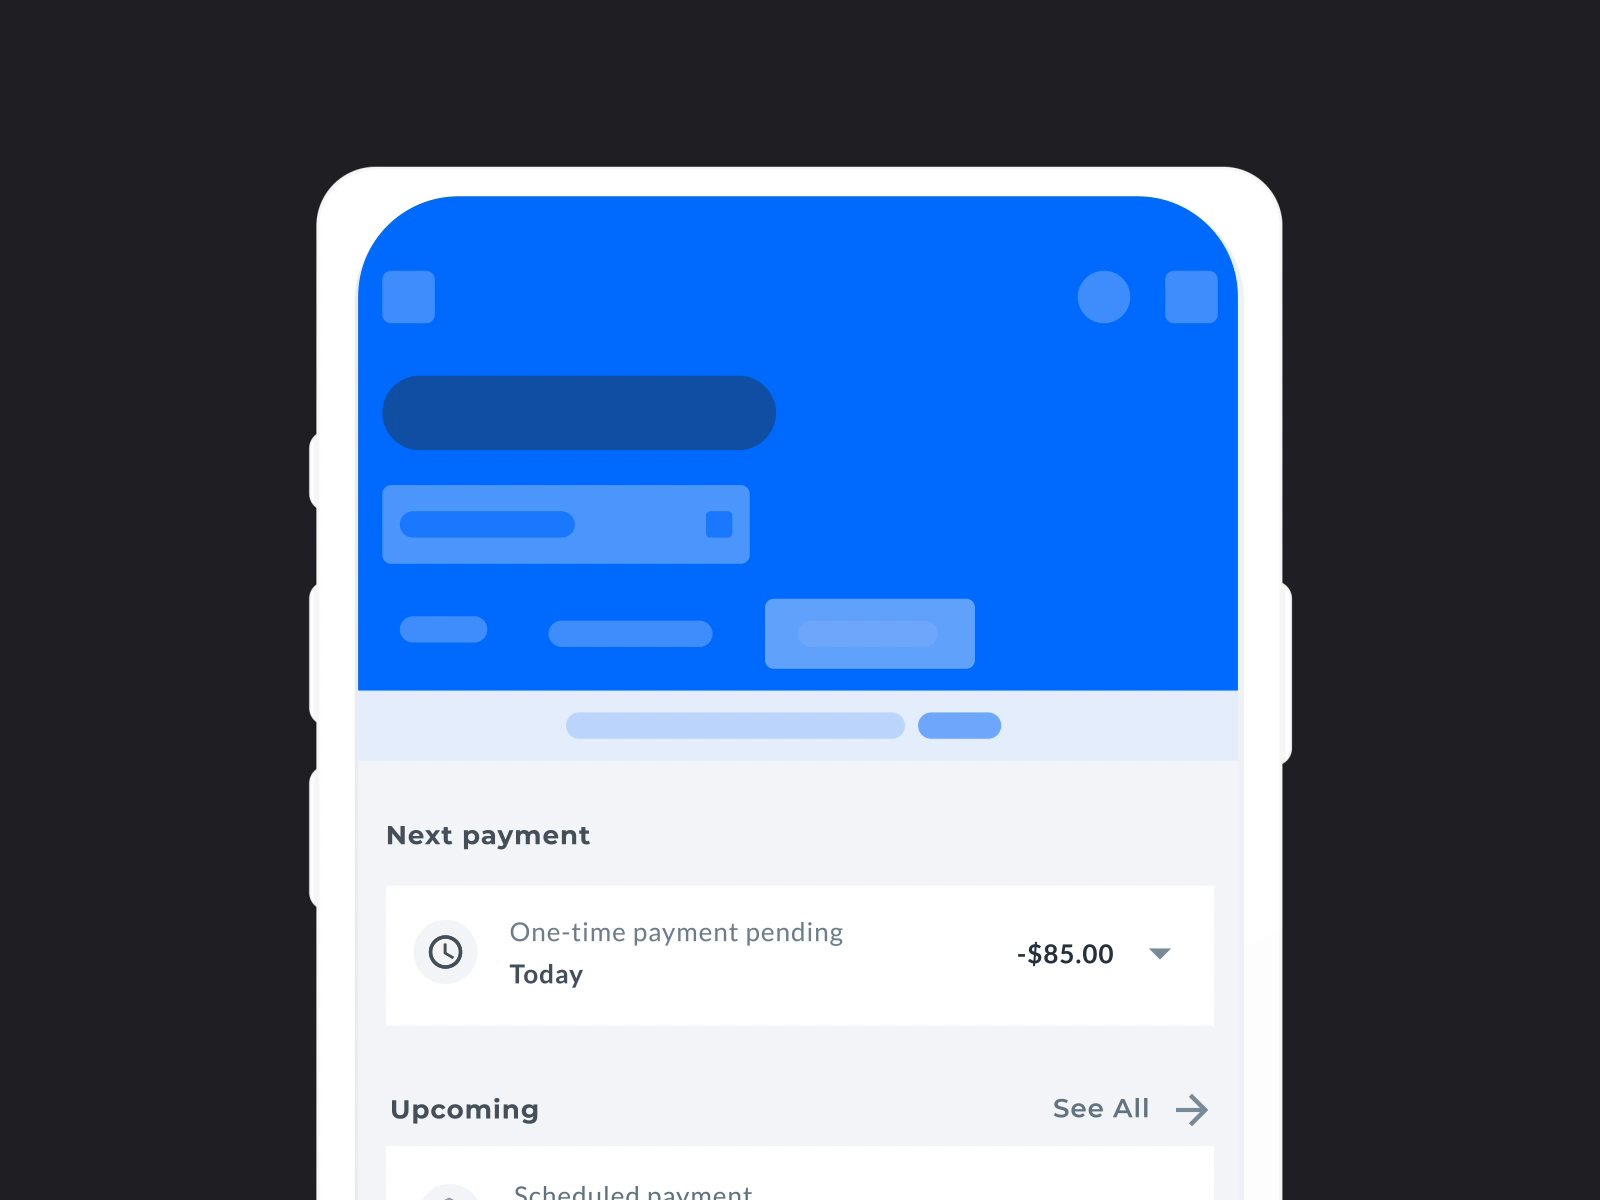 Payment Activity Interaction